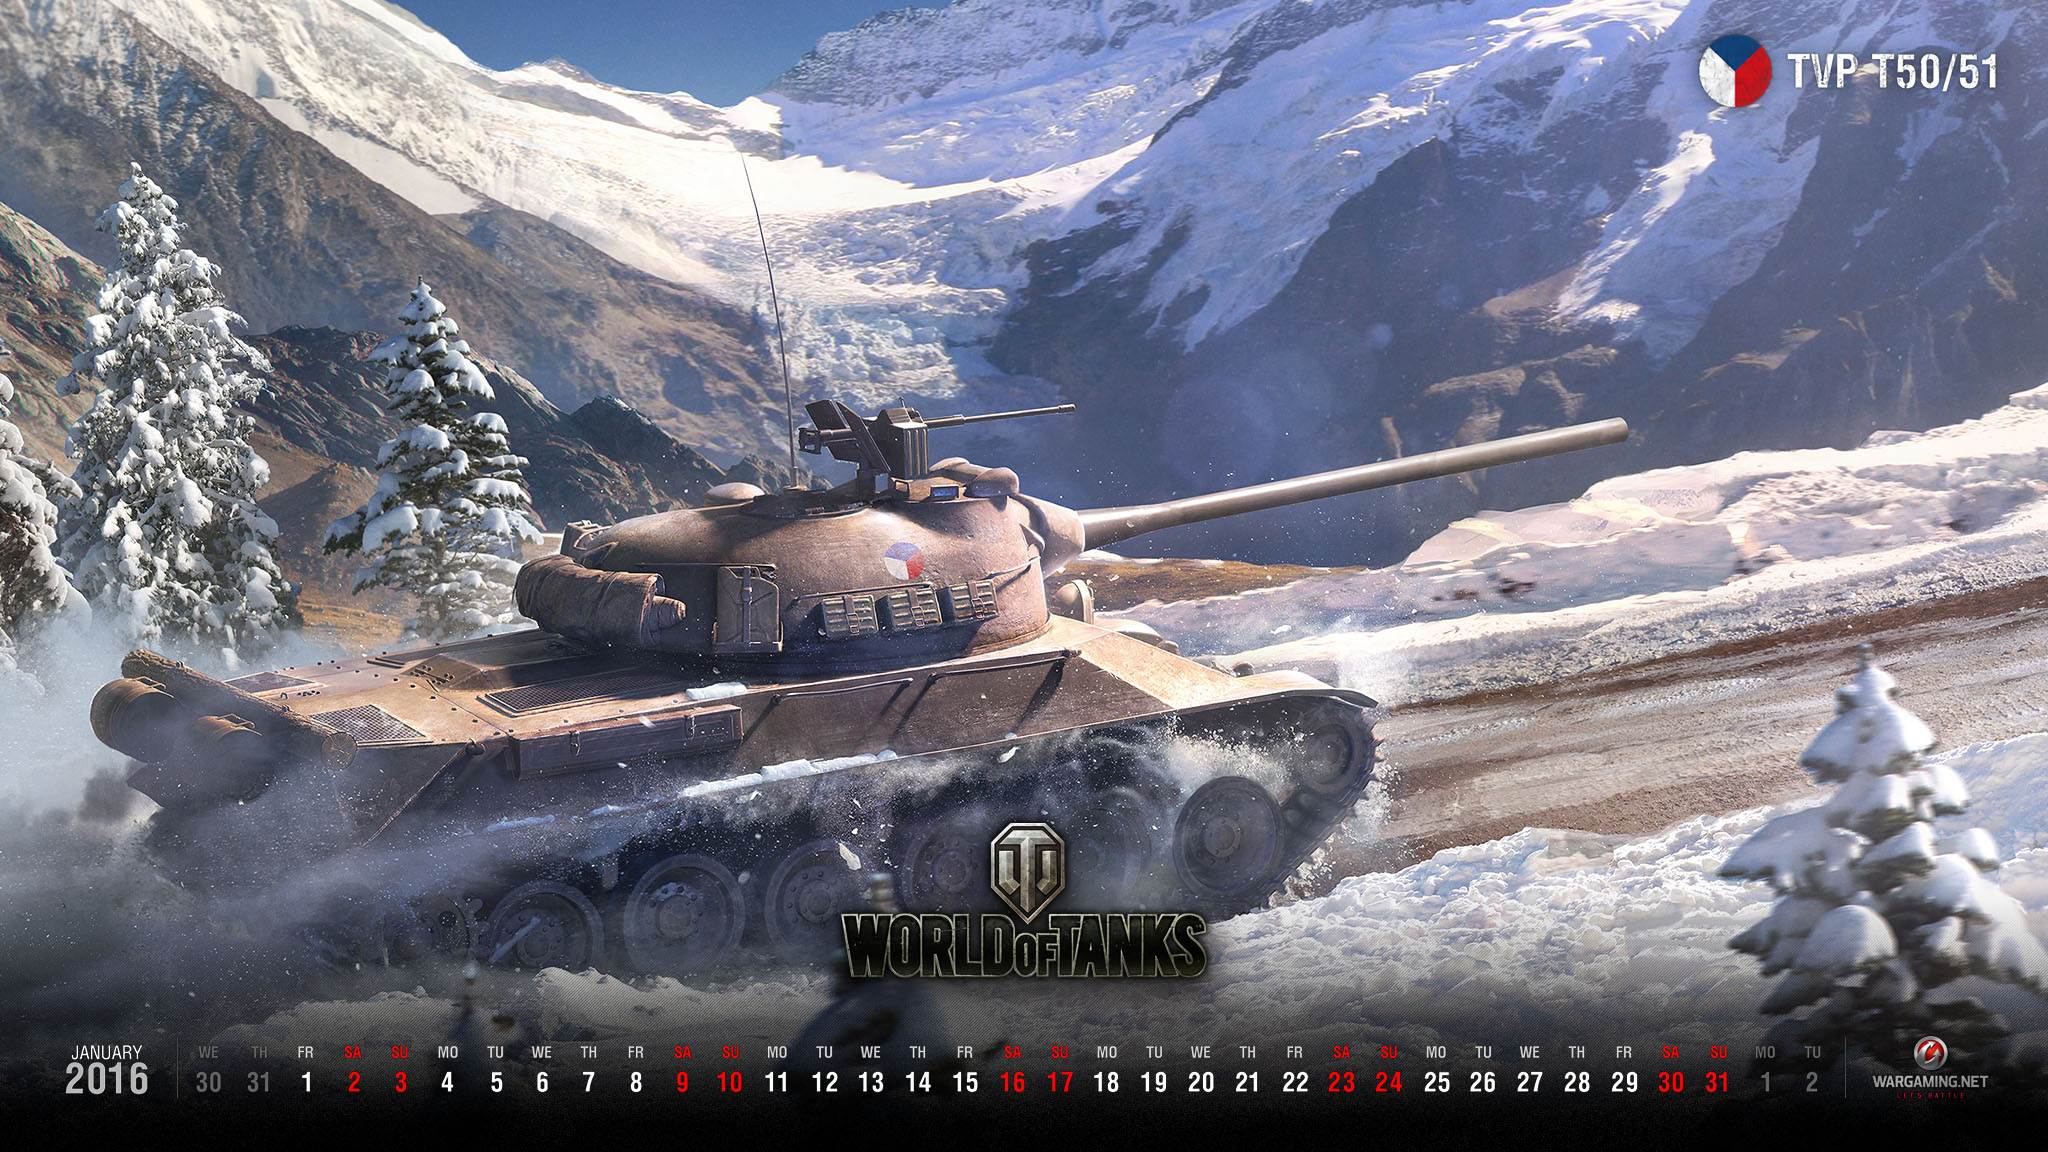 January 2016 WoT Wallpaper – The Armored Patrol